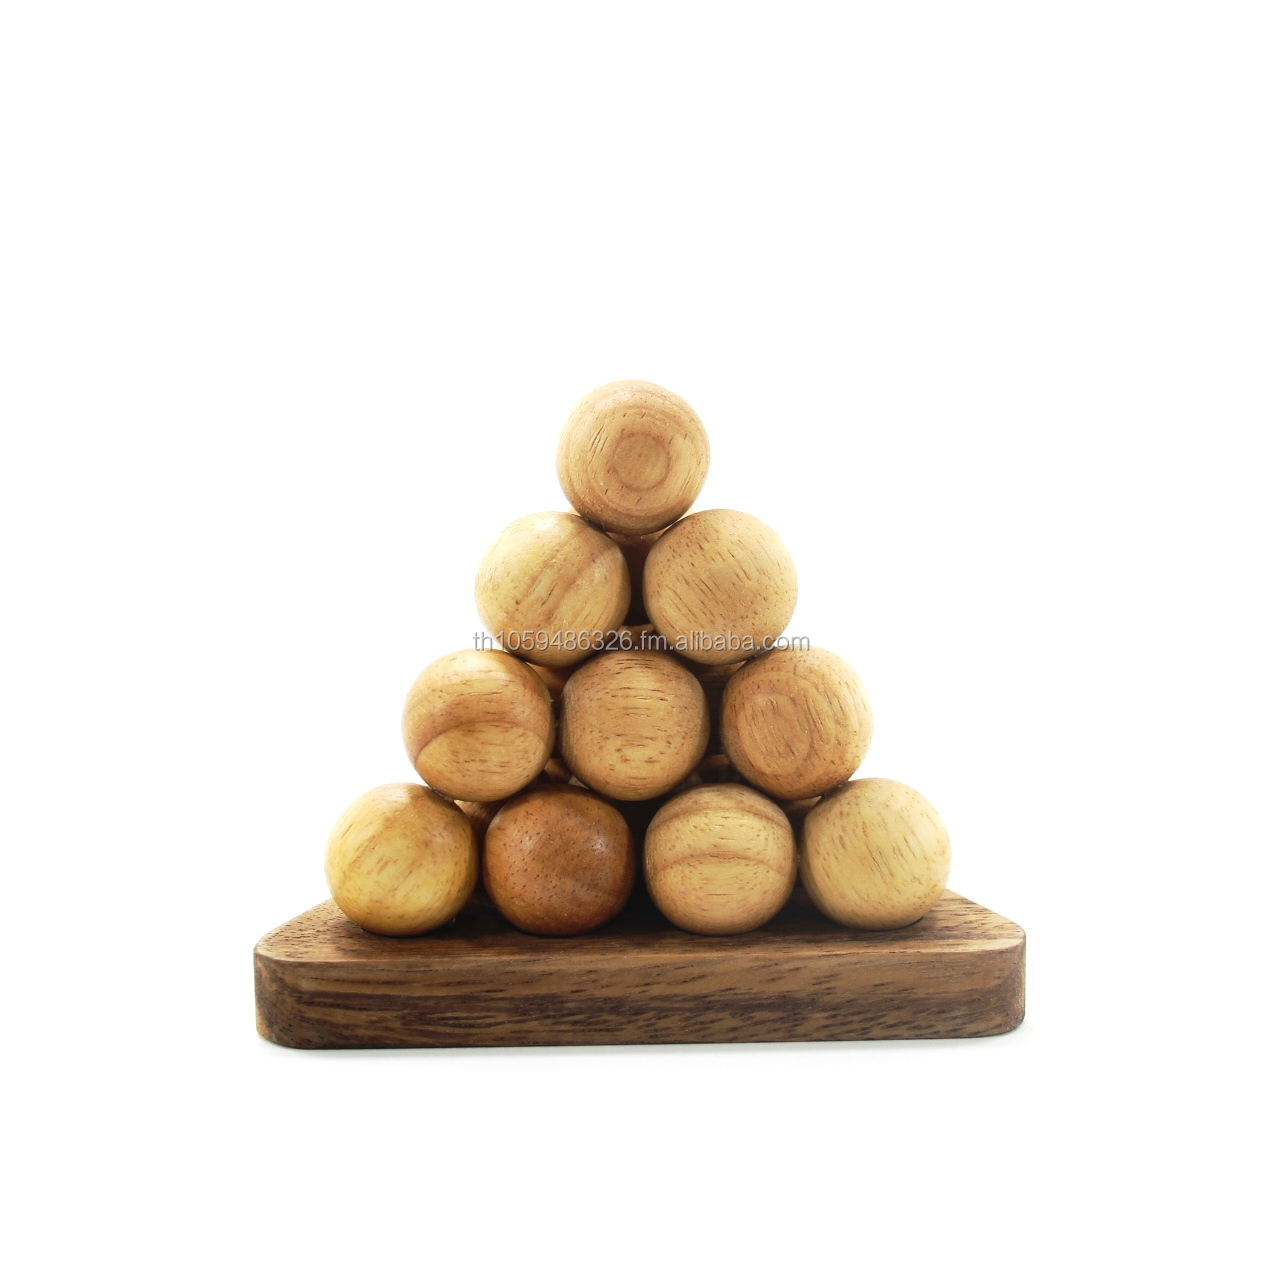 Ball Pyramid Wooden Puzzle